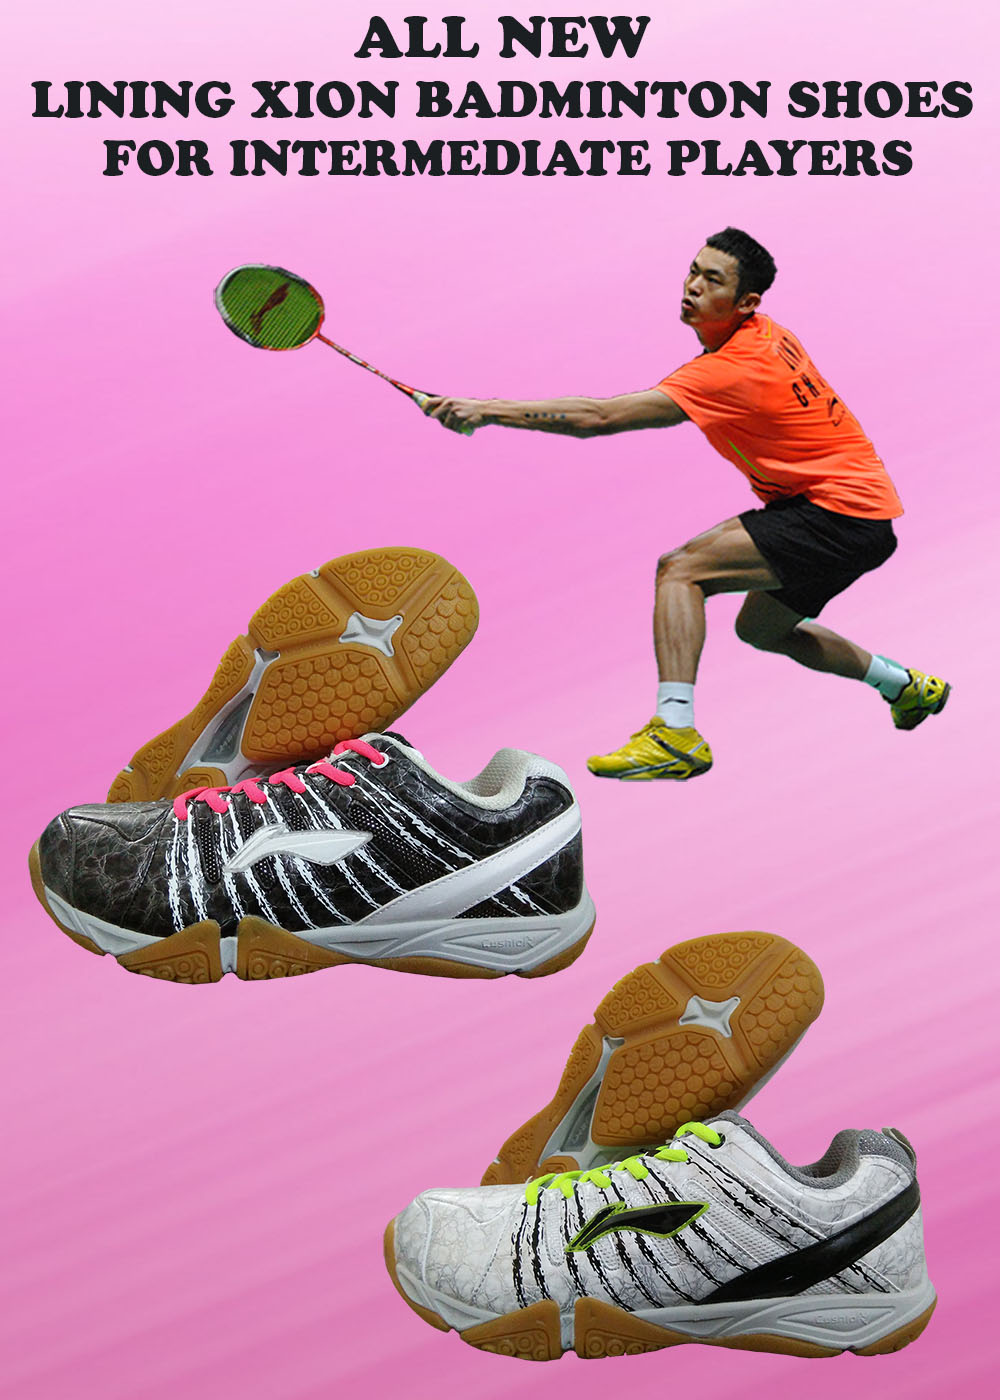 ALL NEW LINING XION BADMINTON SHOES FOR INTERMEDIATE PLAYERS_1